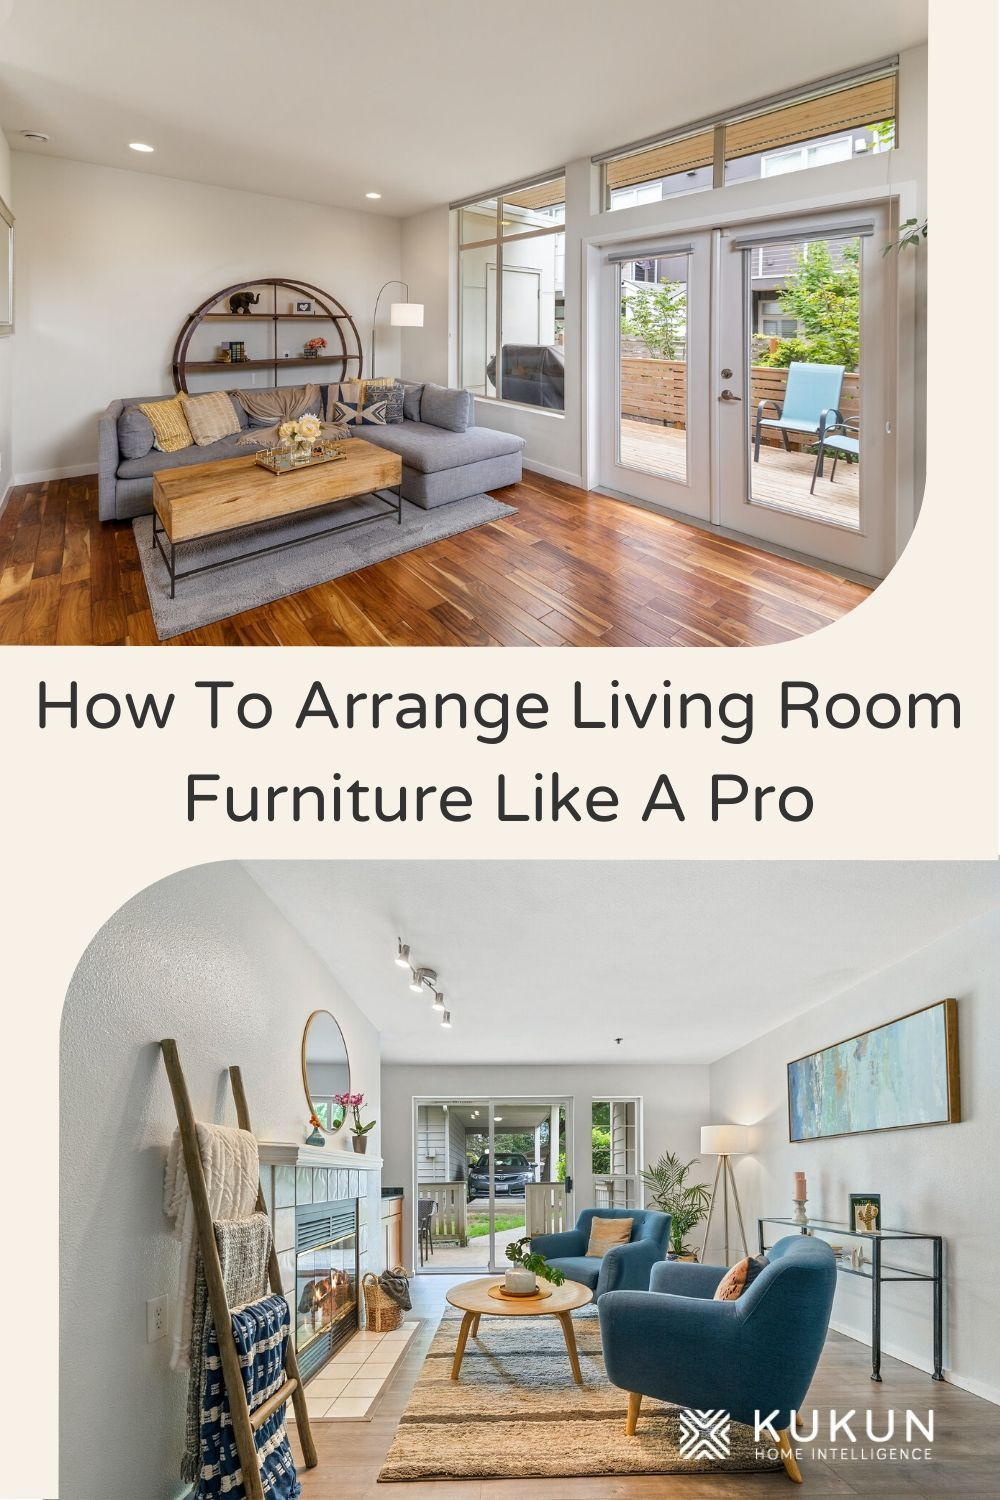 Arranging Living Room Furniture 6 Best Blue Prints In 2020 Living Room Arrangements Living Room Furniture Arrangement Smart Home Design #organize #living #room #furniture